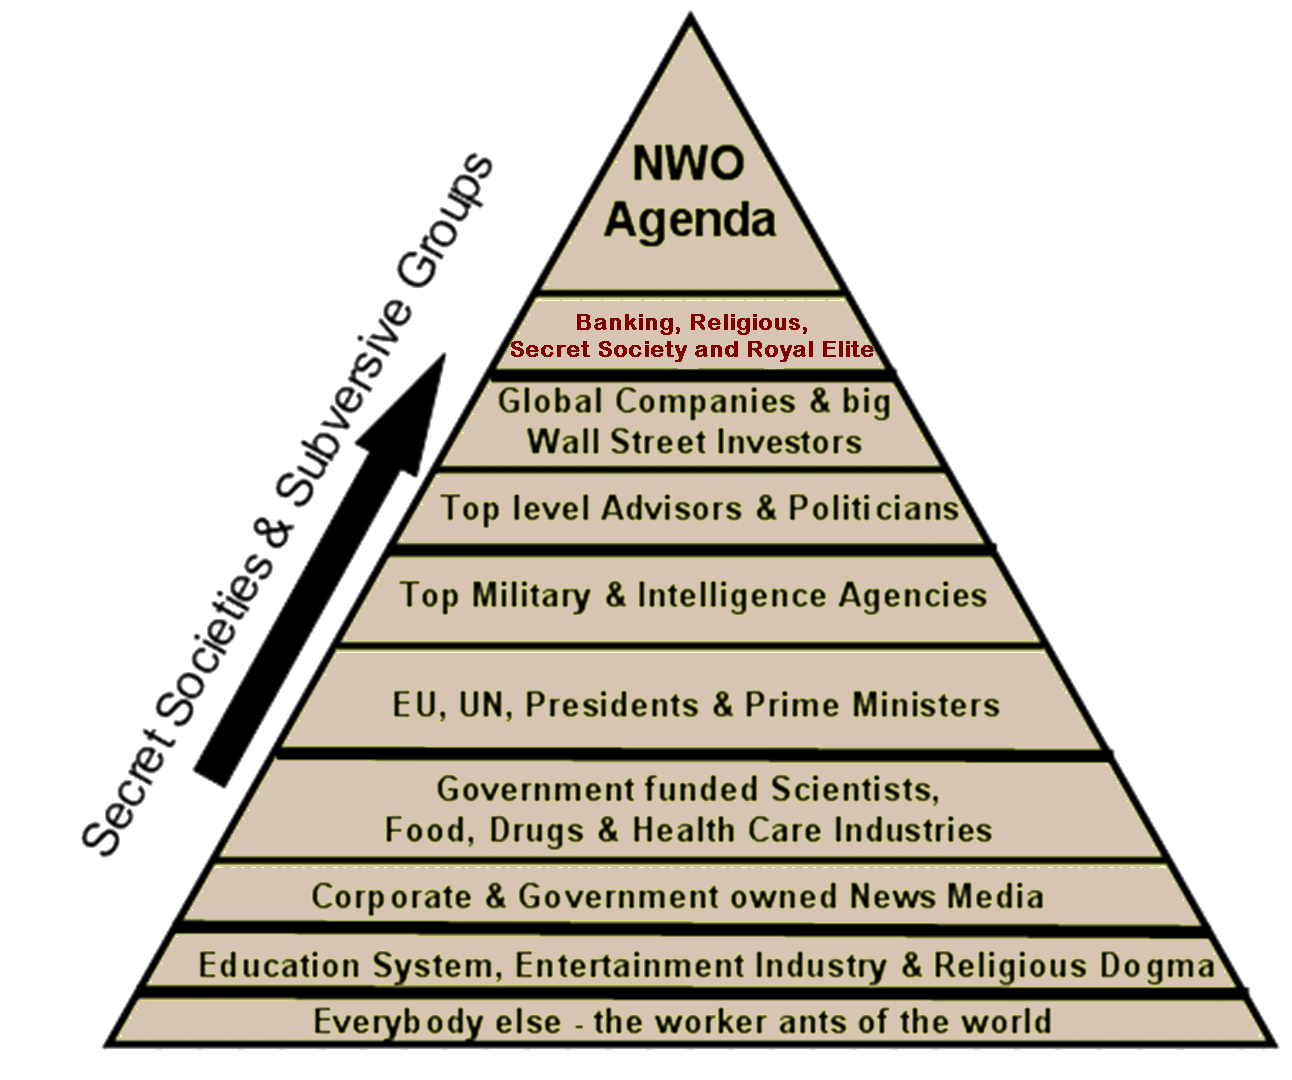 New World Order Agenda